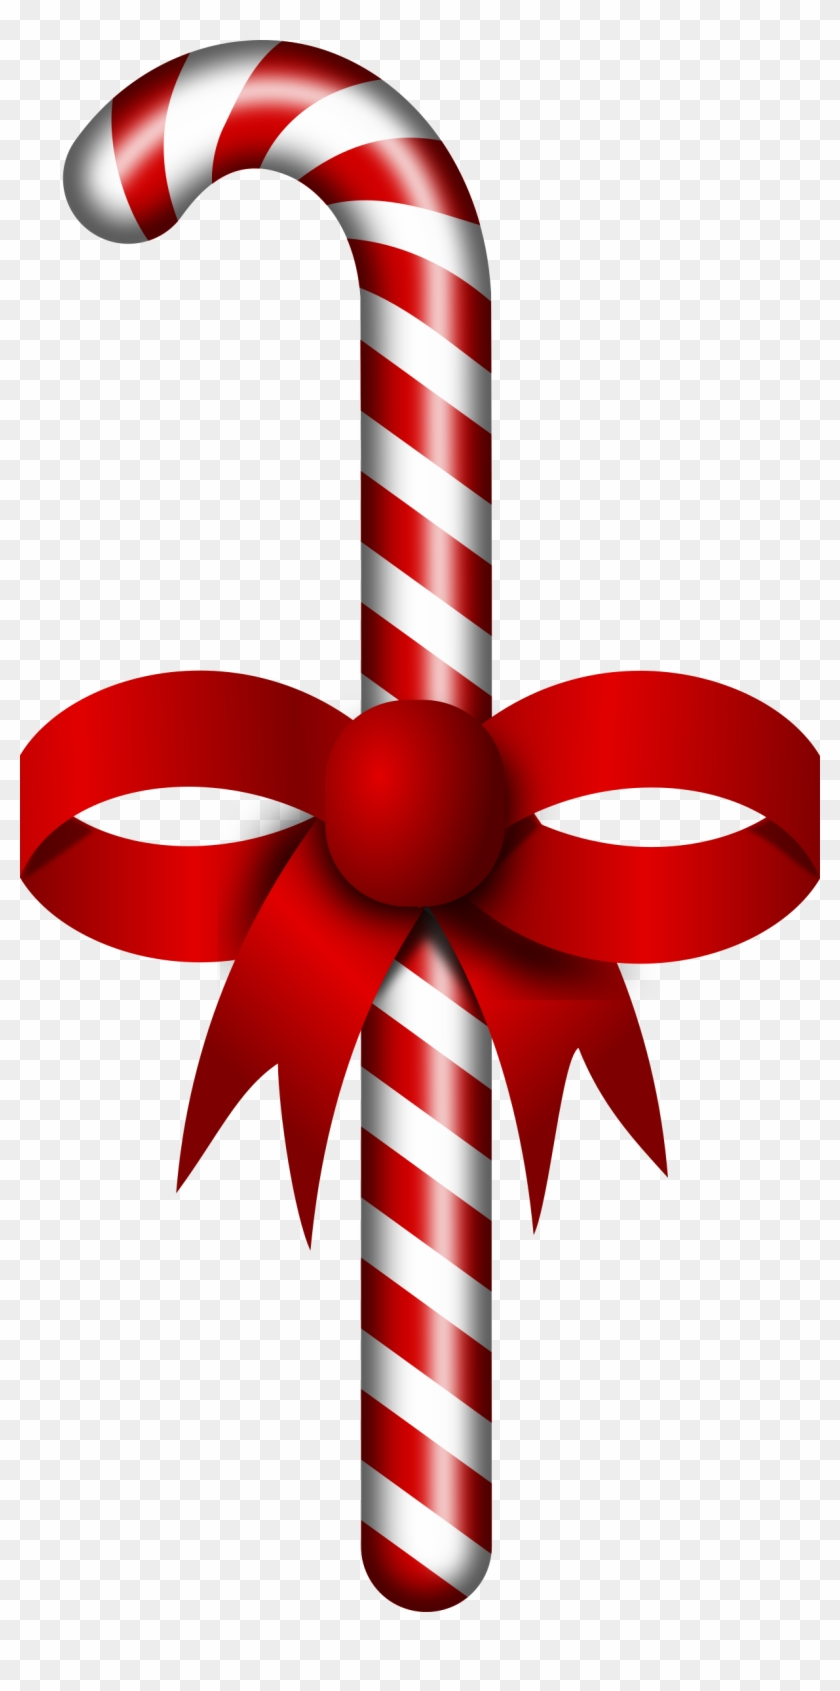 Candy Cane Stick Clipart - Candy Cane With Ribbon Clipart #60540